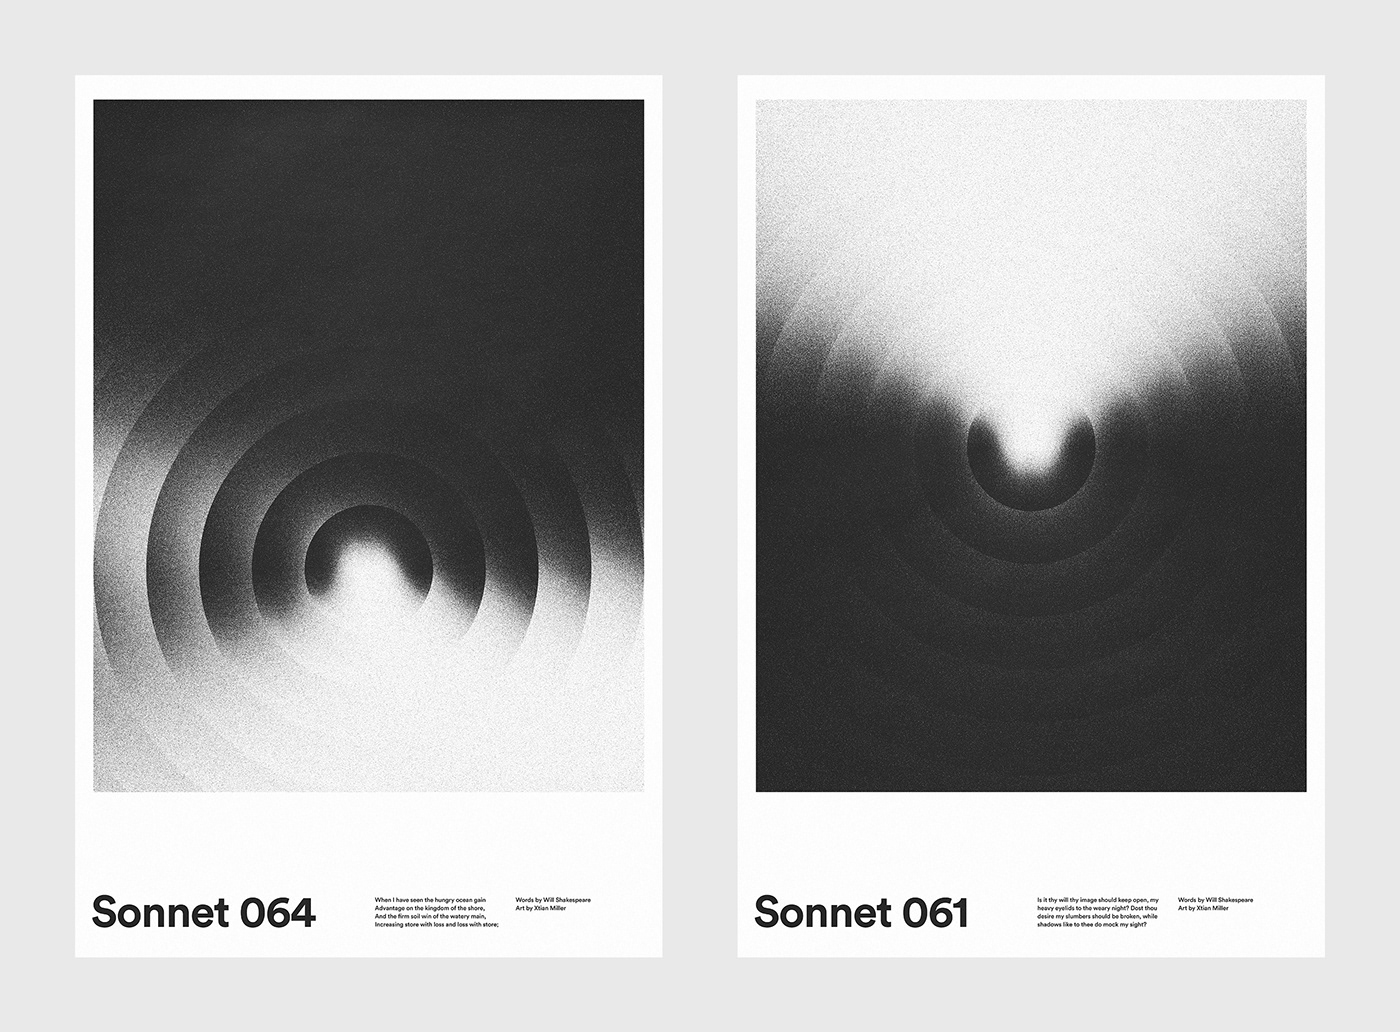 Sonnet 064 and 061